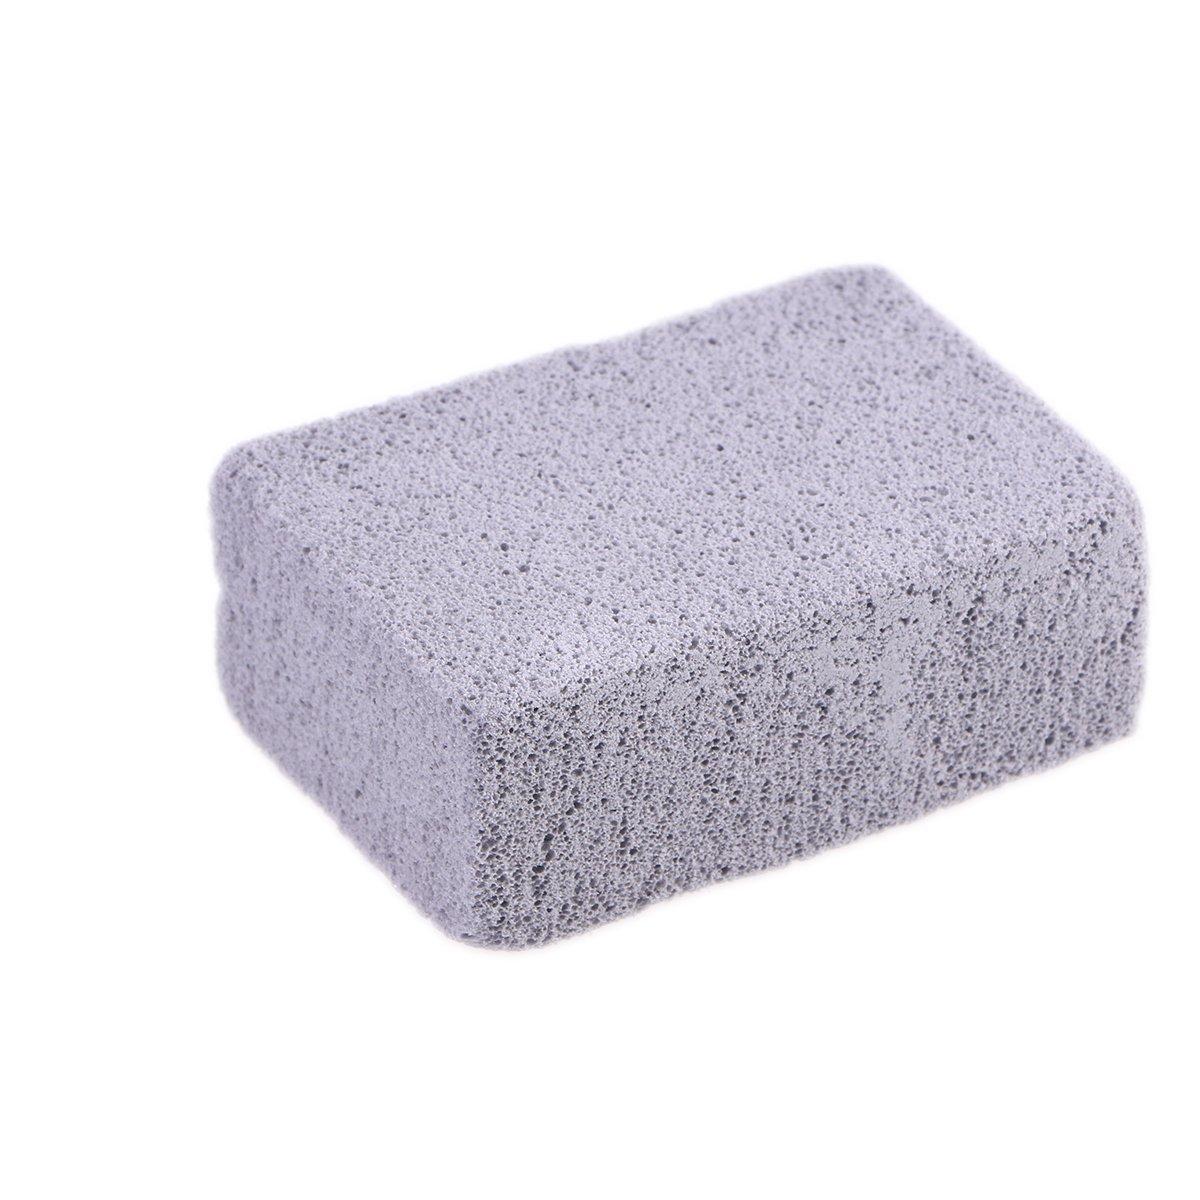 OUNONA Pumice Stone Foot Care Scrubber Stone Grill Cleaning Block